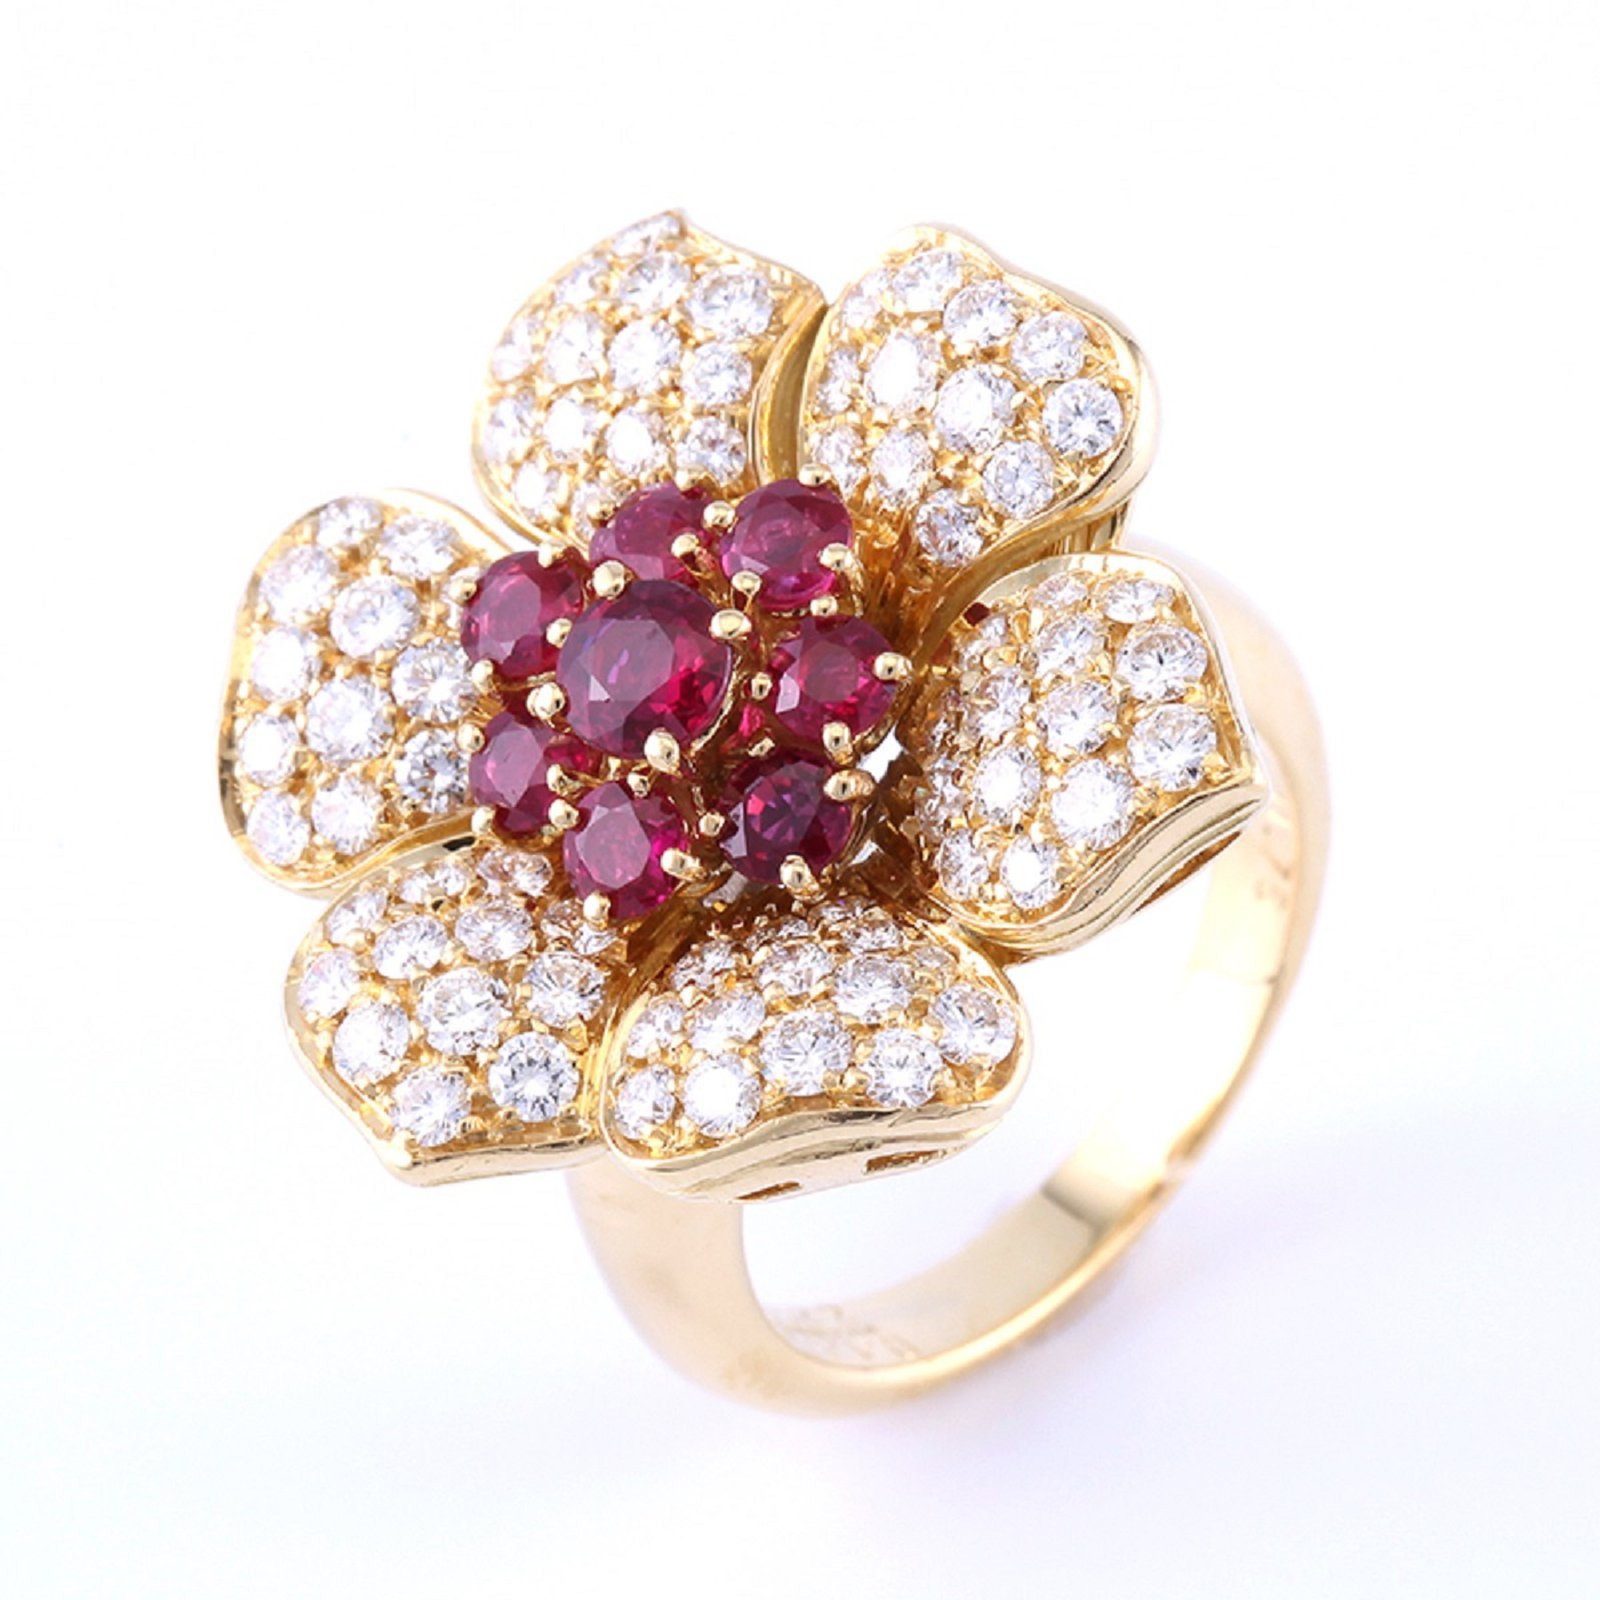 Picchiotti picchiotti 18k gold diamond ruby cocktail flower ring picchiotti picchiotti 18k gold diamond ruby cocktail flower ring rings yellow gold golden ref33041 mightylinksfo